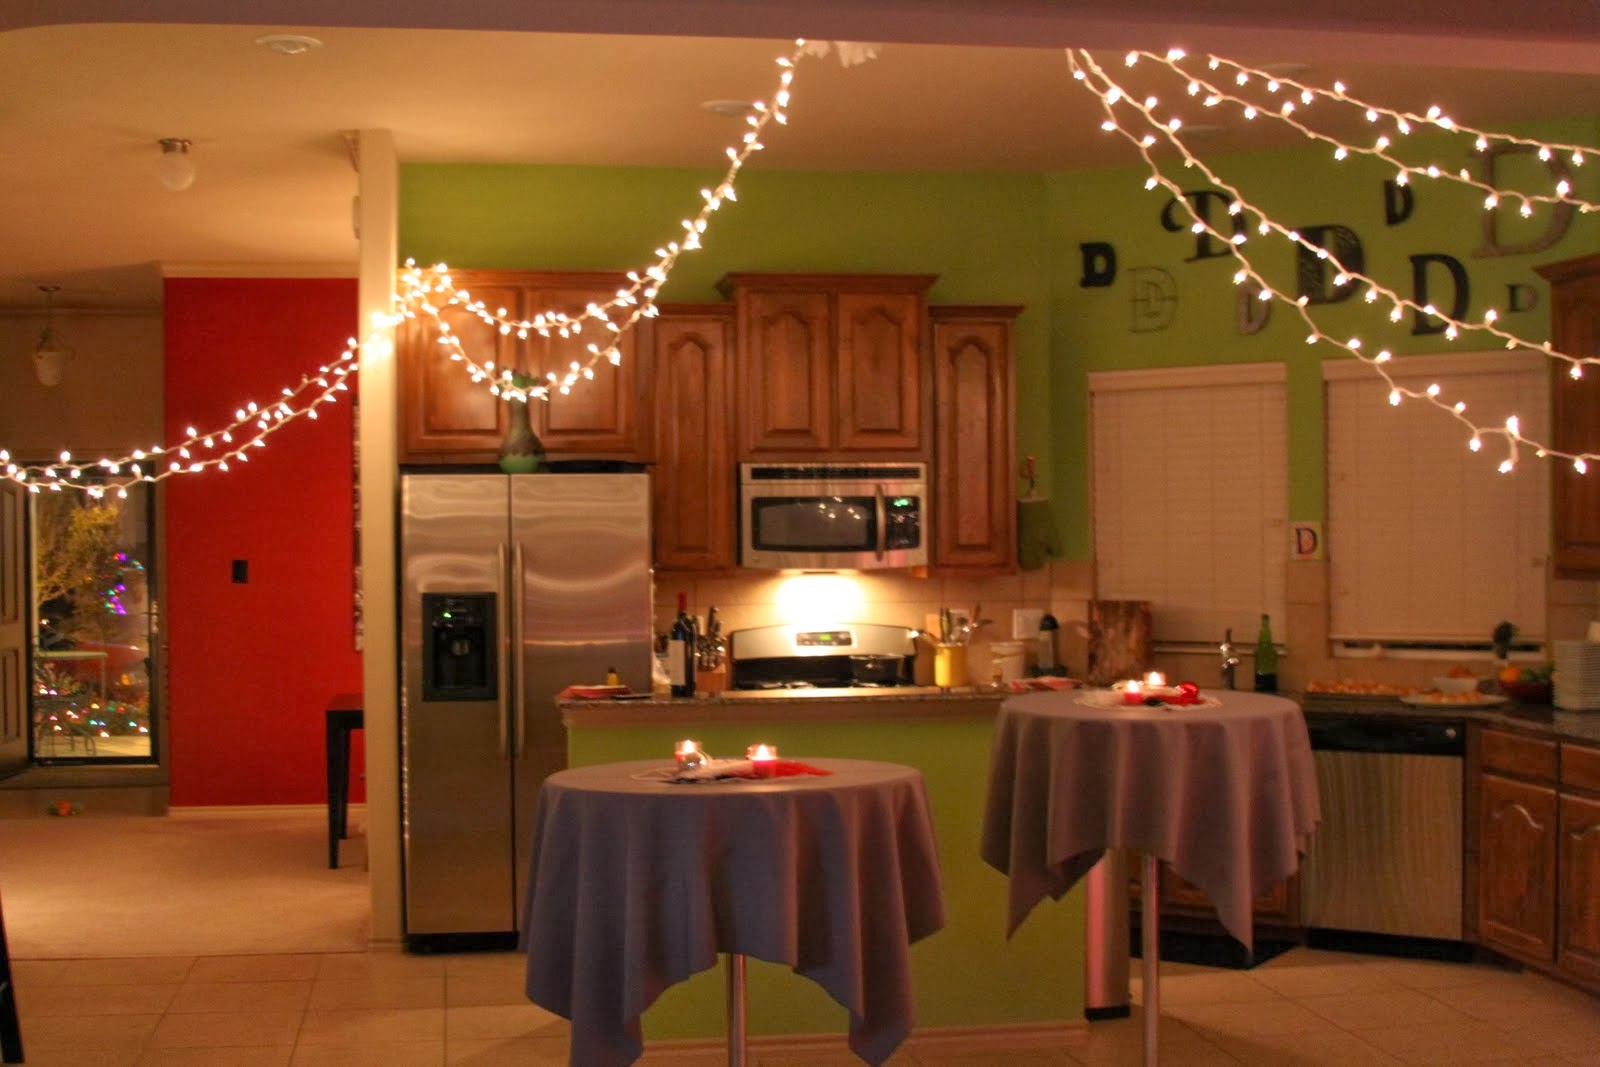 How To Decorate A Small Room Tastefully For Xmas